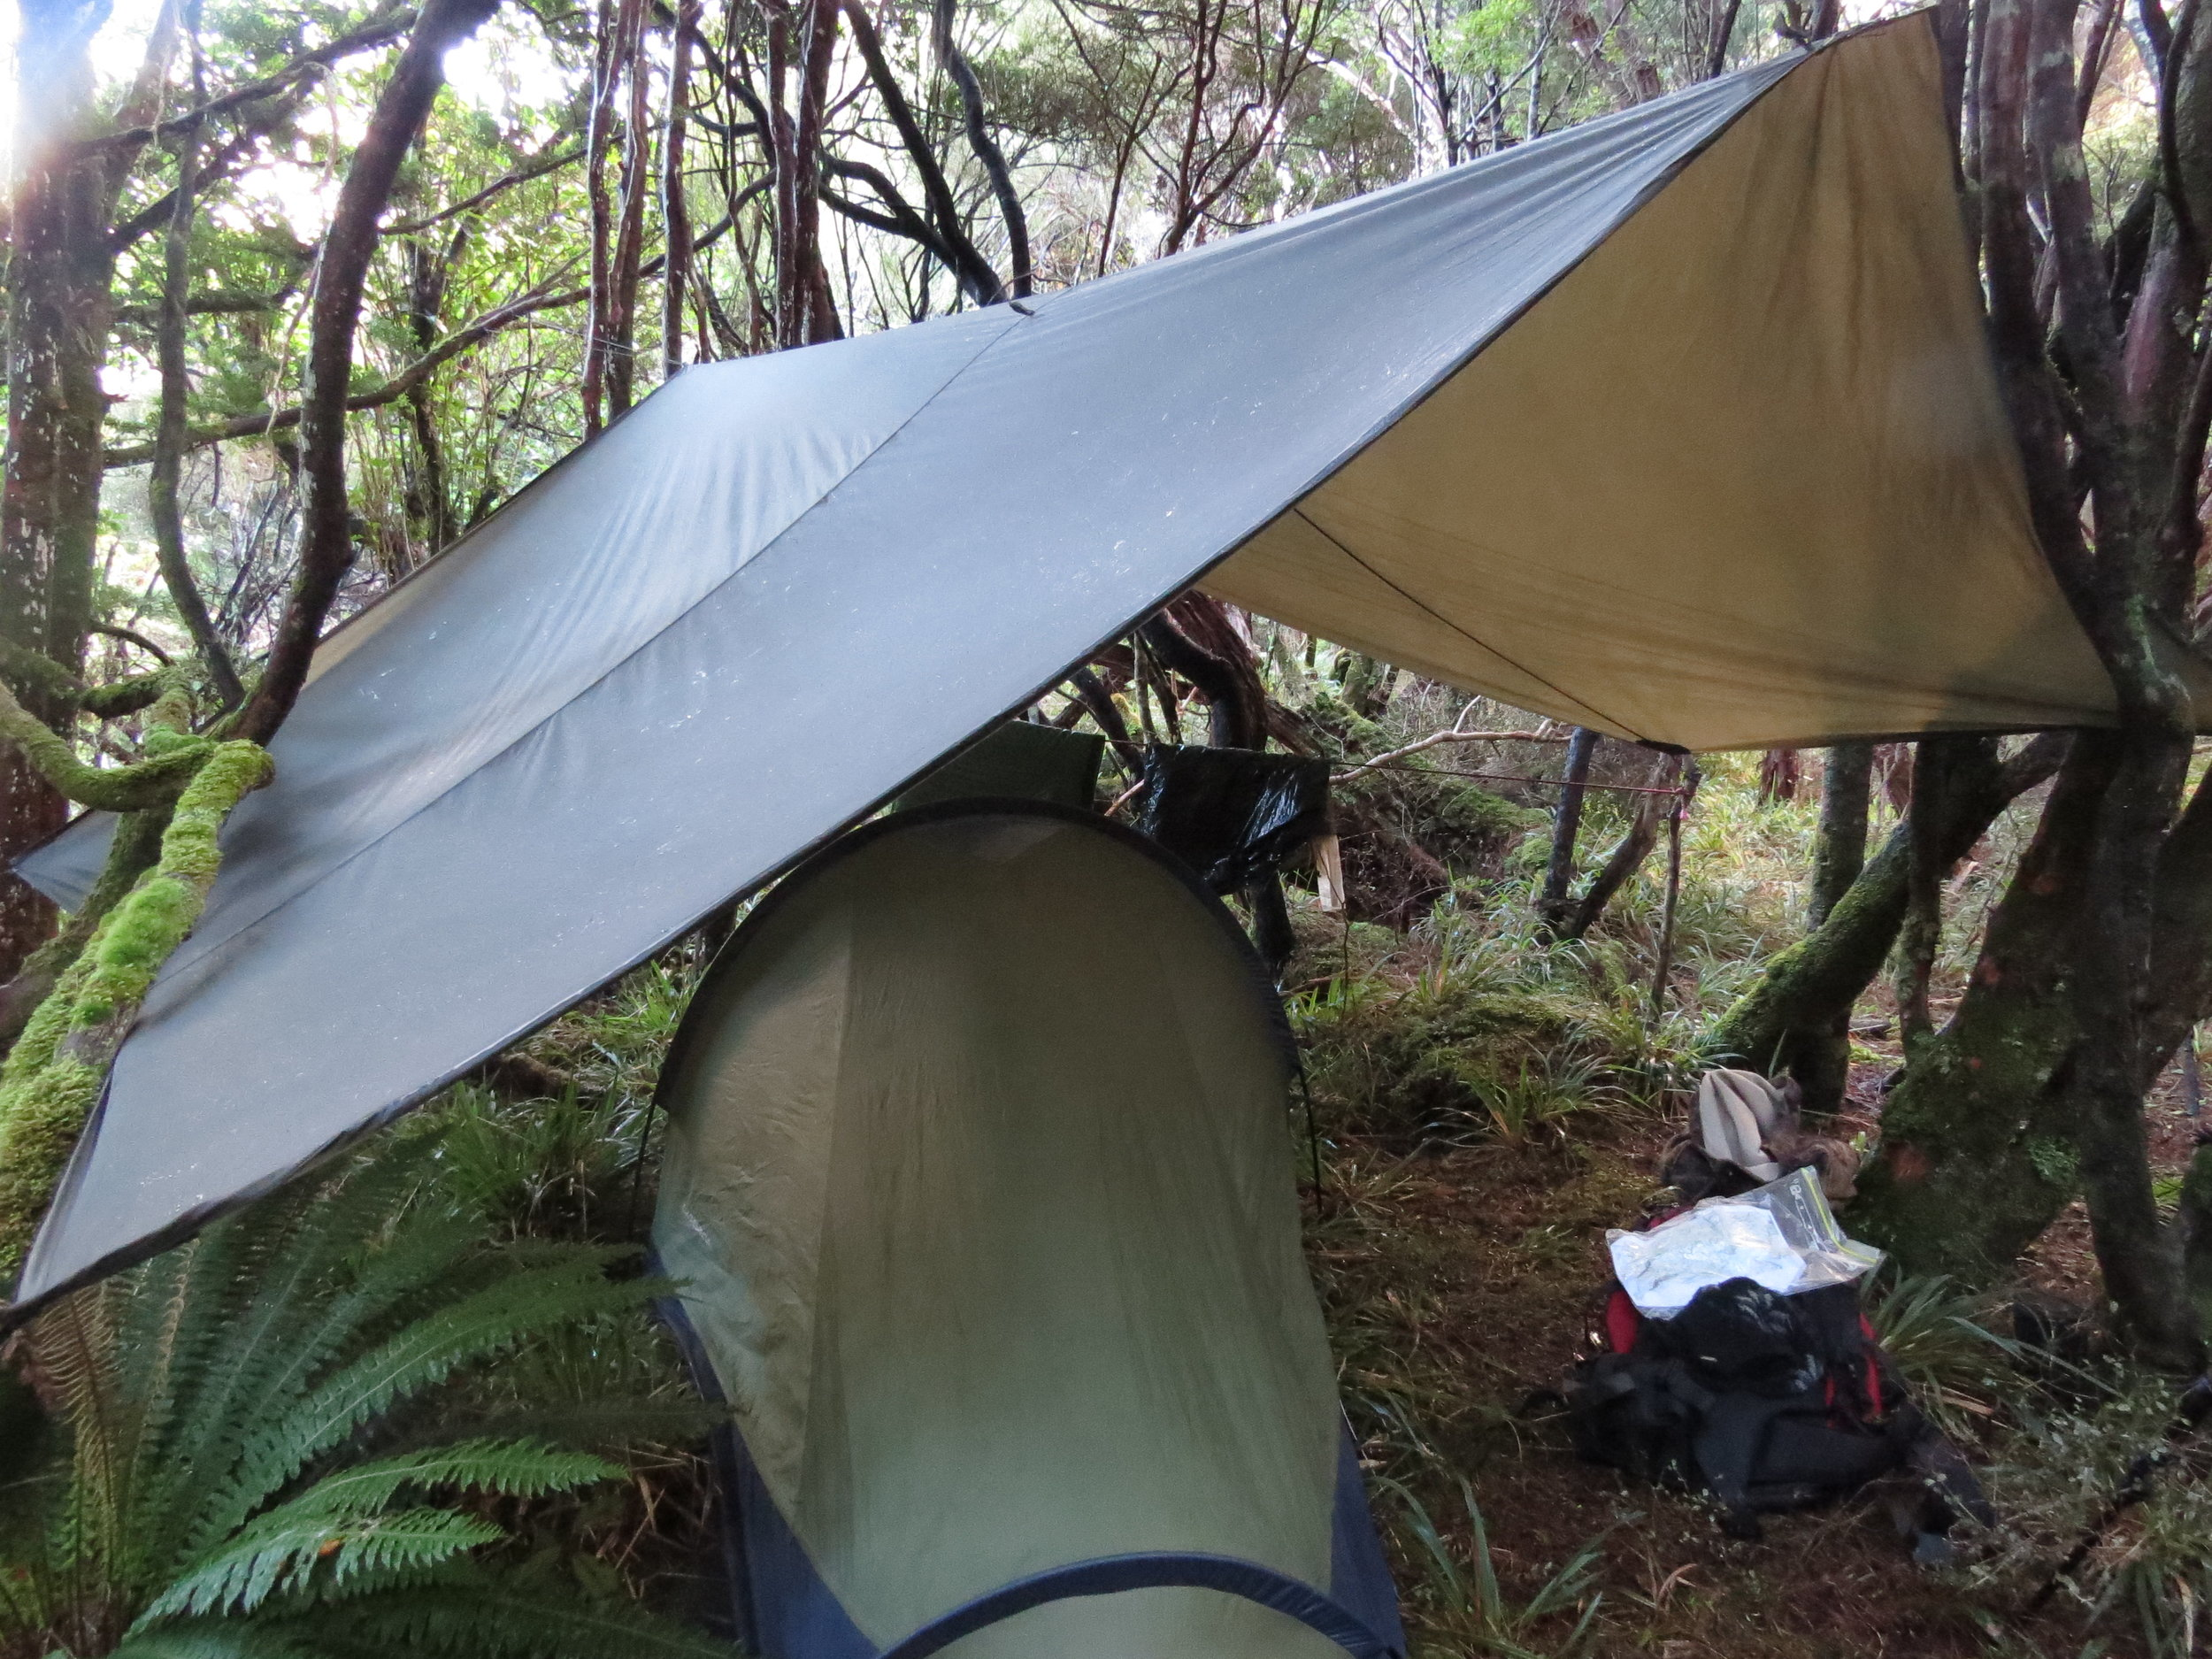 Back-pack hunting in winter on Stewart Island, rain and hail every day! Getting your gear dry for the next morning is crucial to keeping you keen and interested in careful stalking, otherwise its just survival and no deer!